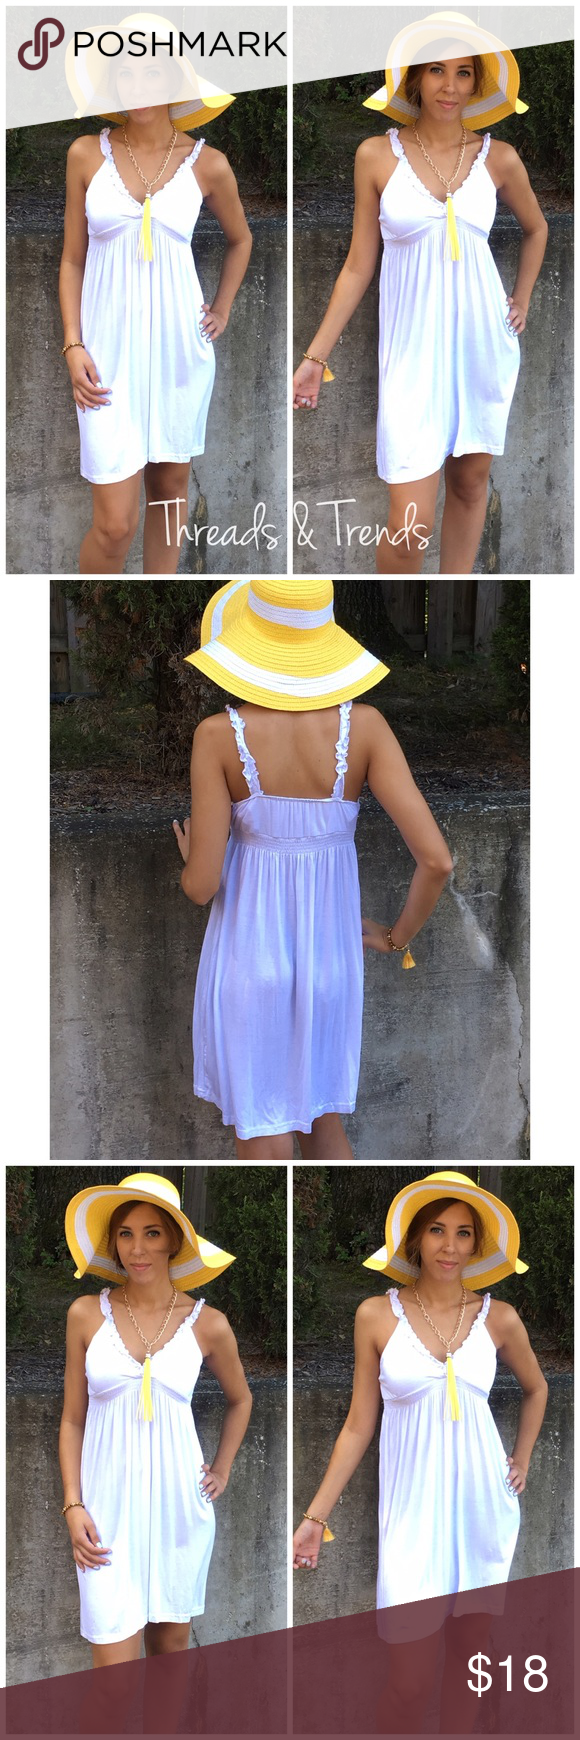 """Beach Tank Dress The perfect little white beach dress to match any swimsuit. Made of cotton and spandex. Size small. Bust 34"""", length 36"""" hat and accessories sold separately. Vintage Threads & Trends Swim Coverups"""